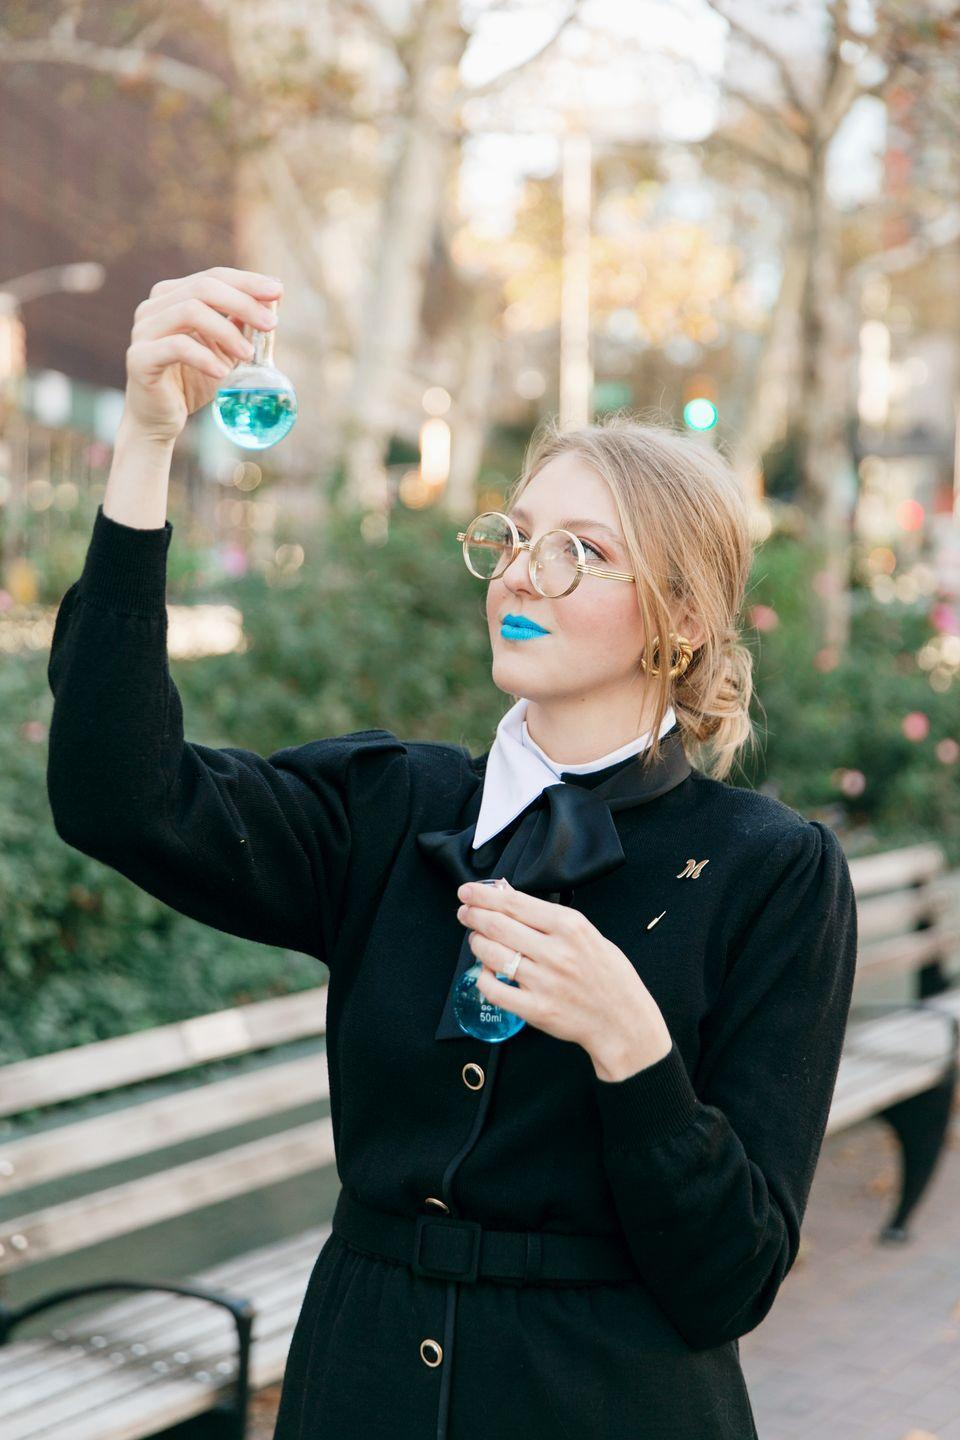 """<p>Here's a fun tribute to French physicist and chemist Marie Curie. If you've got a black dress and a few neon accessories (so as to highlight each of them in a flashy way!), you'll be good to go. And if you don't have any blue food coloring for your """"lab chemicals,"""" you can always opt for a blue-colored sports drink! </p><p><a class=""""link rapid-noclick-resp"""" href=""""https://www.amazon.com/NYX-Macaron-Pastel-Lippies-Lipstick/dp/B00K4EIIEC?tag=syn-yahoo-20&ascsubtag=%5Bartid%7C10050.g.4571%5Bsrc%7Cyahoo-us"""" rel=""""nofollow noopener"""" target=""""_blank"""" data-ylk=""""slk:SHOP BLUE LIPSTICK"""">SHOP BLUE LIPSTICK</a> </p>"""